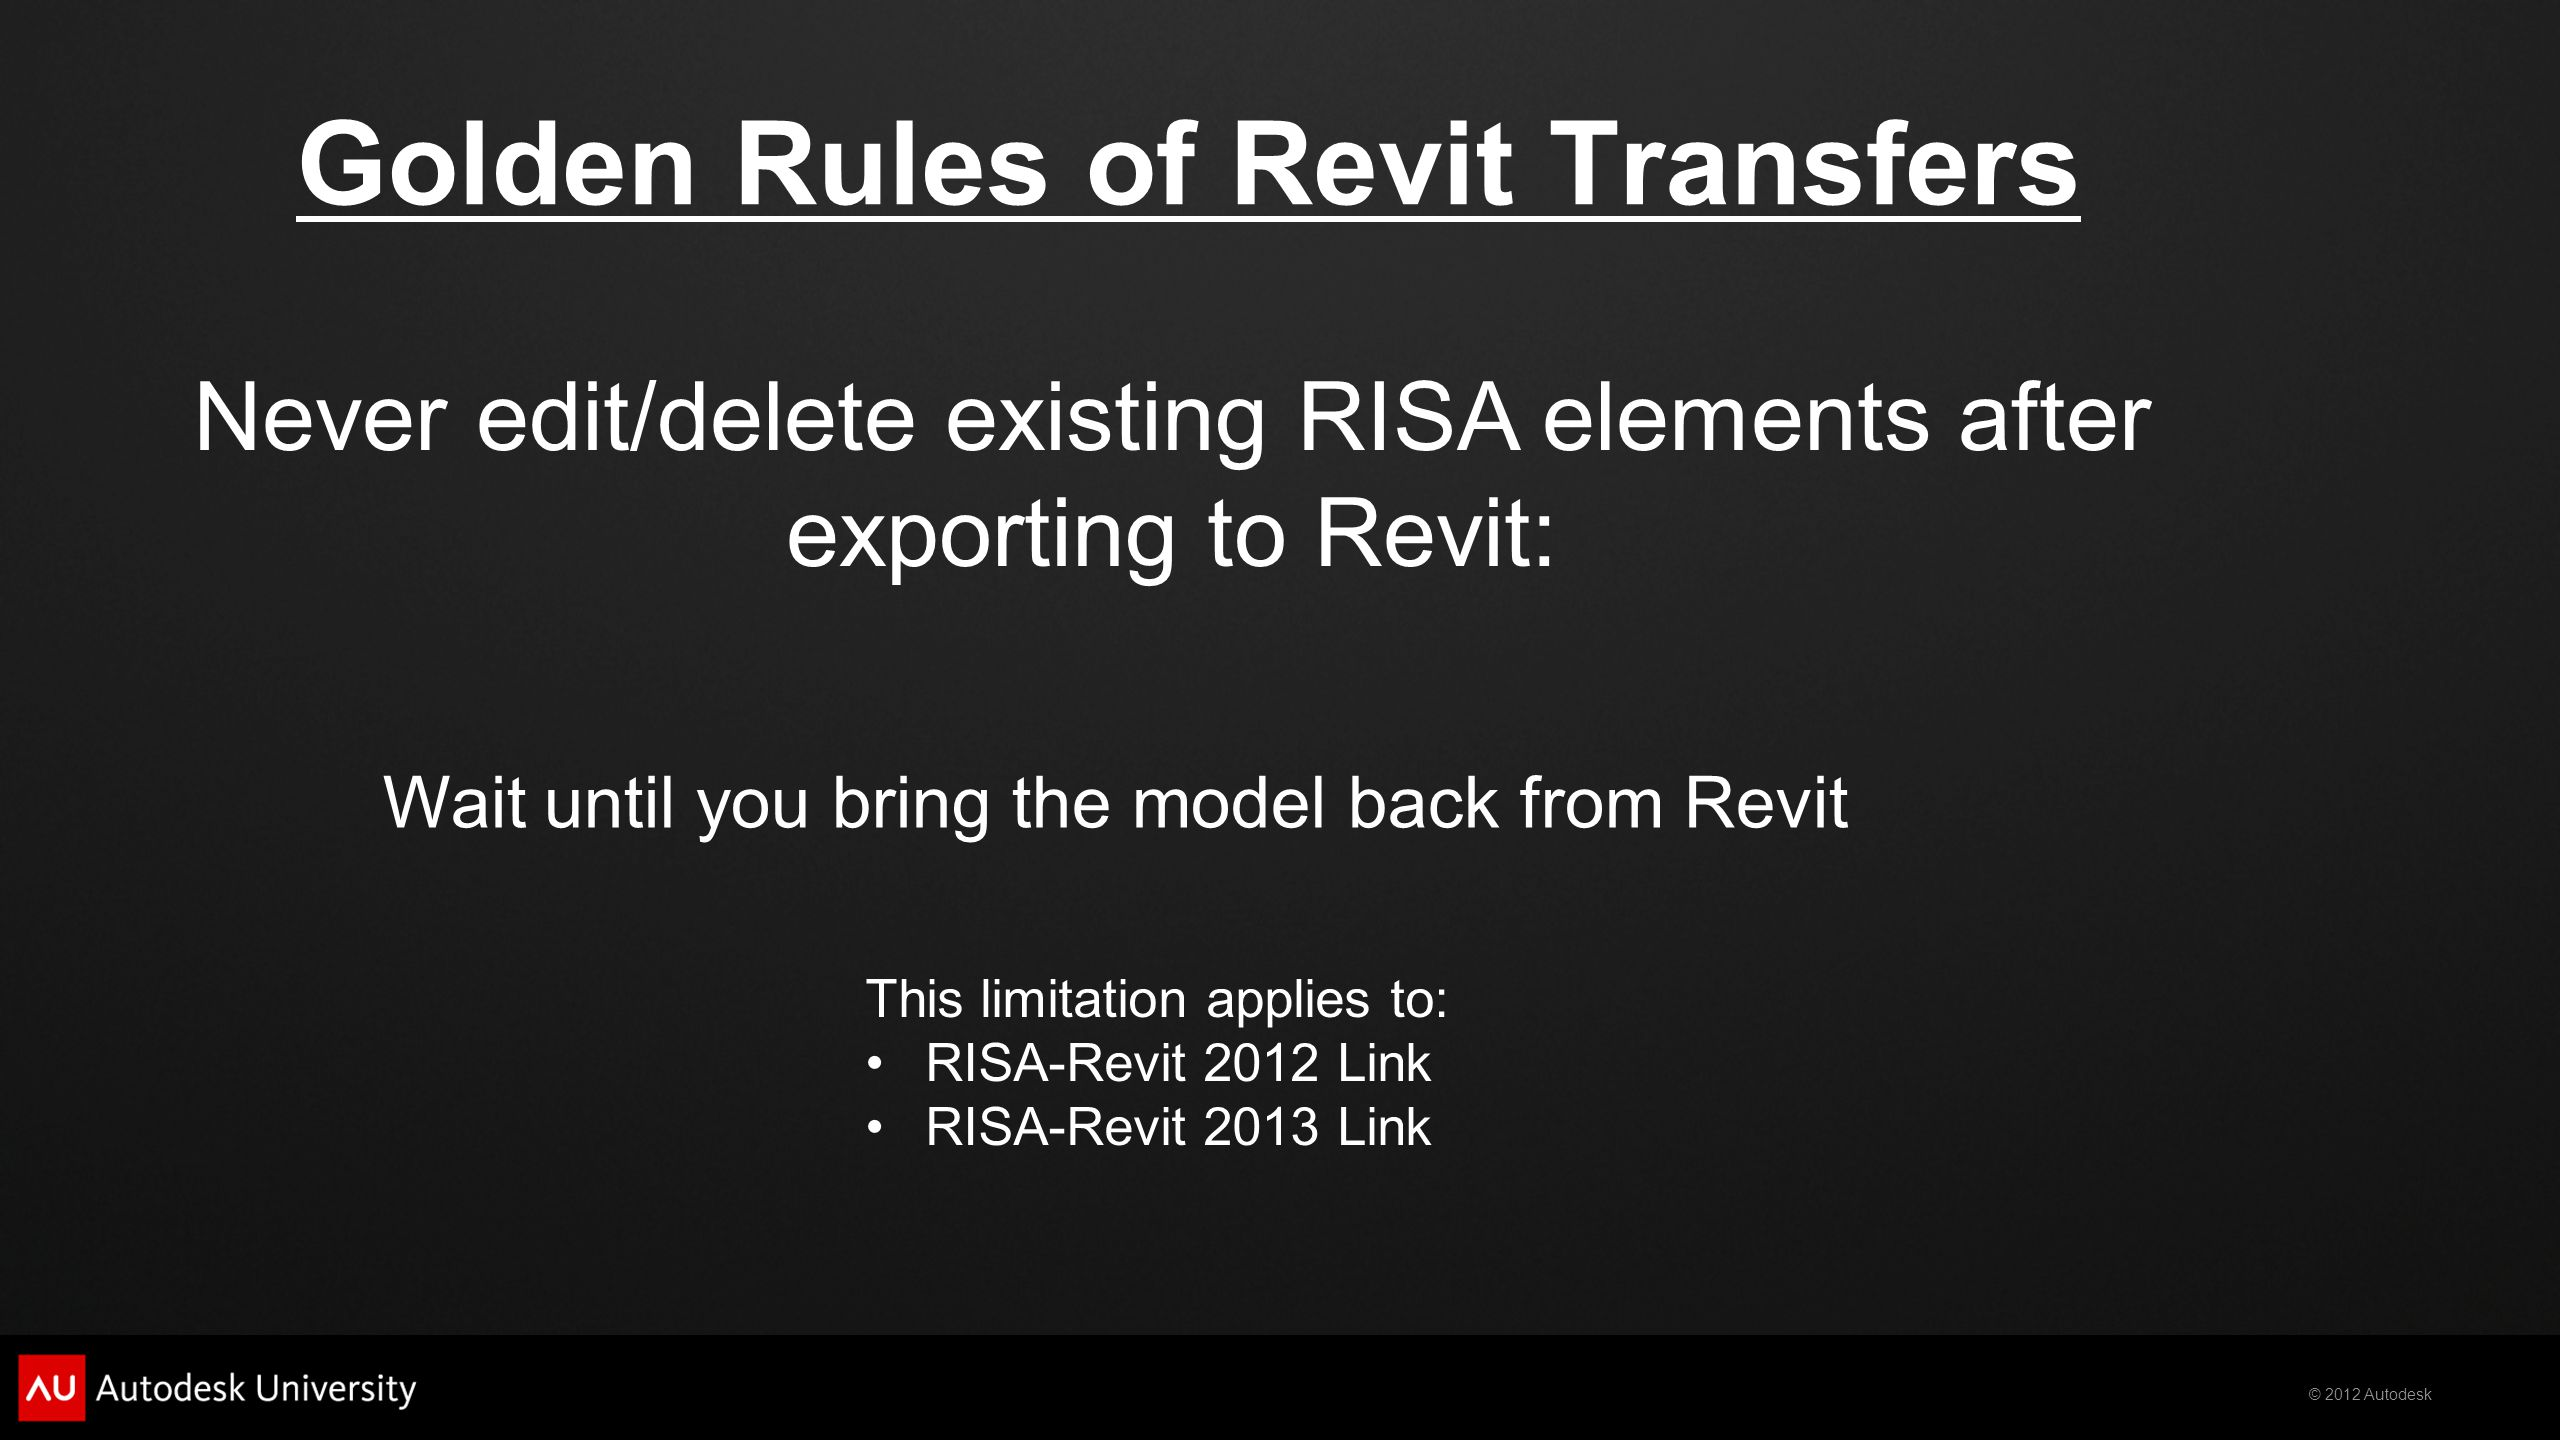 © 2012 Autodesk Golden Rules of Revit Transfers Never edit/delete existing RISA elements after exporting to Revit: Wait until you bring the model back